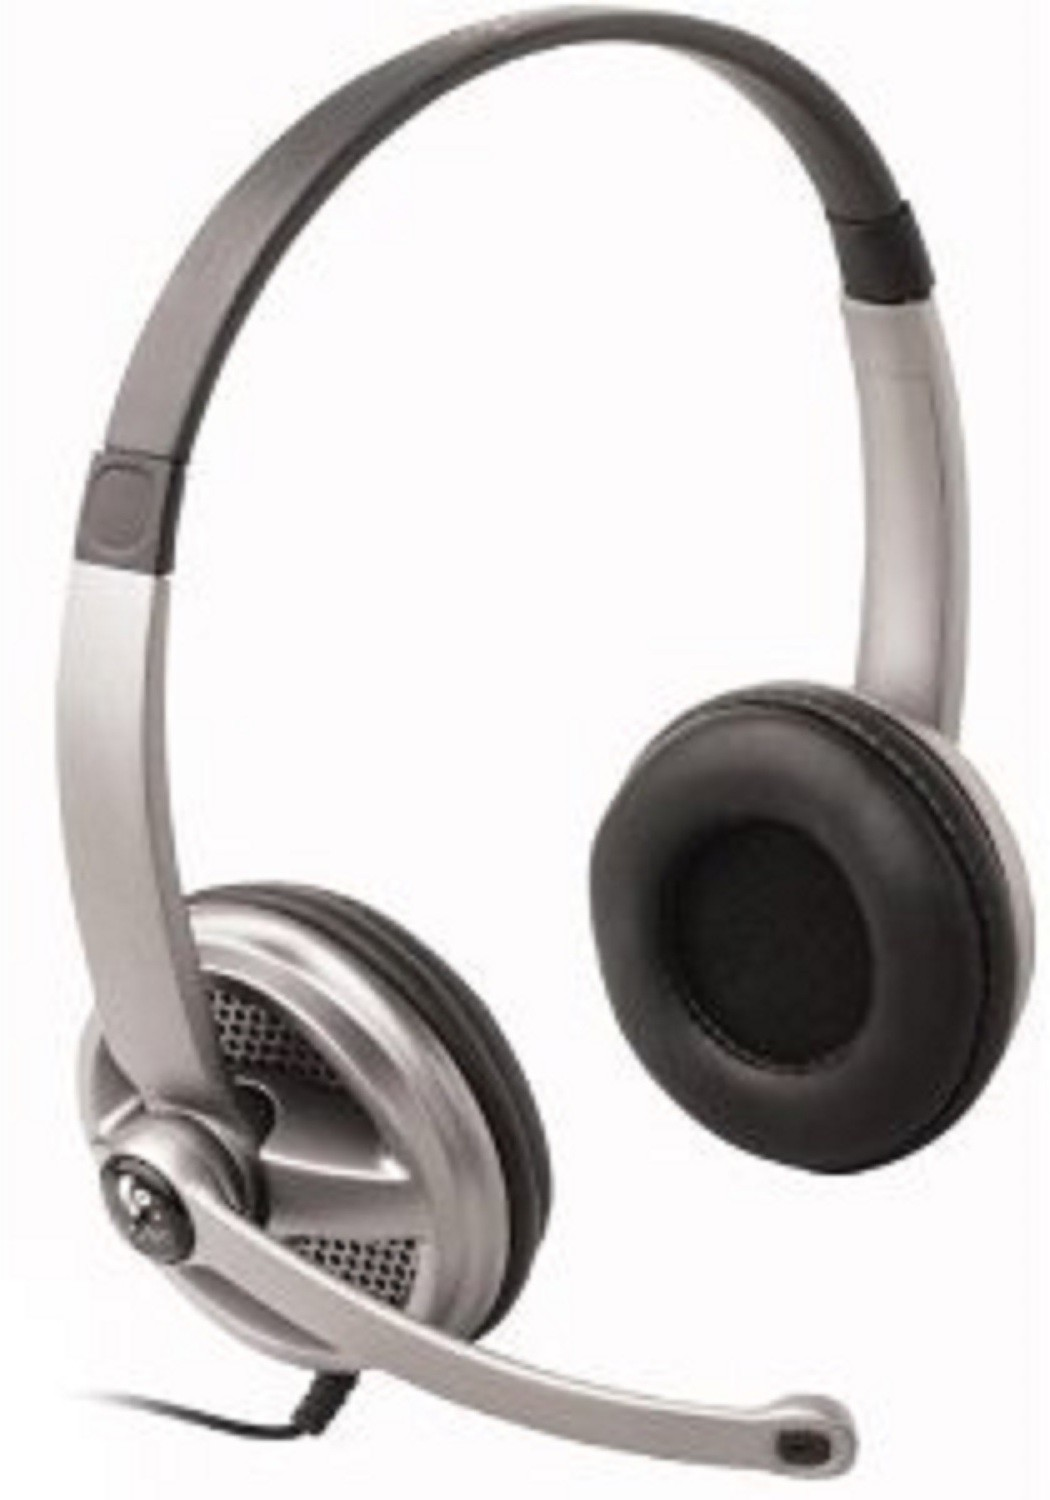 Deals - Pune - Logitech <br> Gaming Headsets<br> Category - gaming<br> Business - Flipkart.com